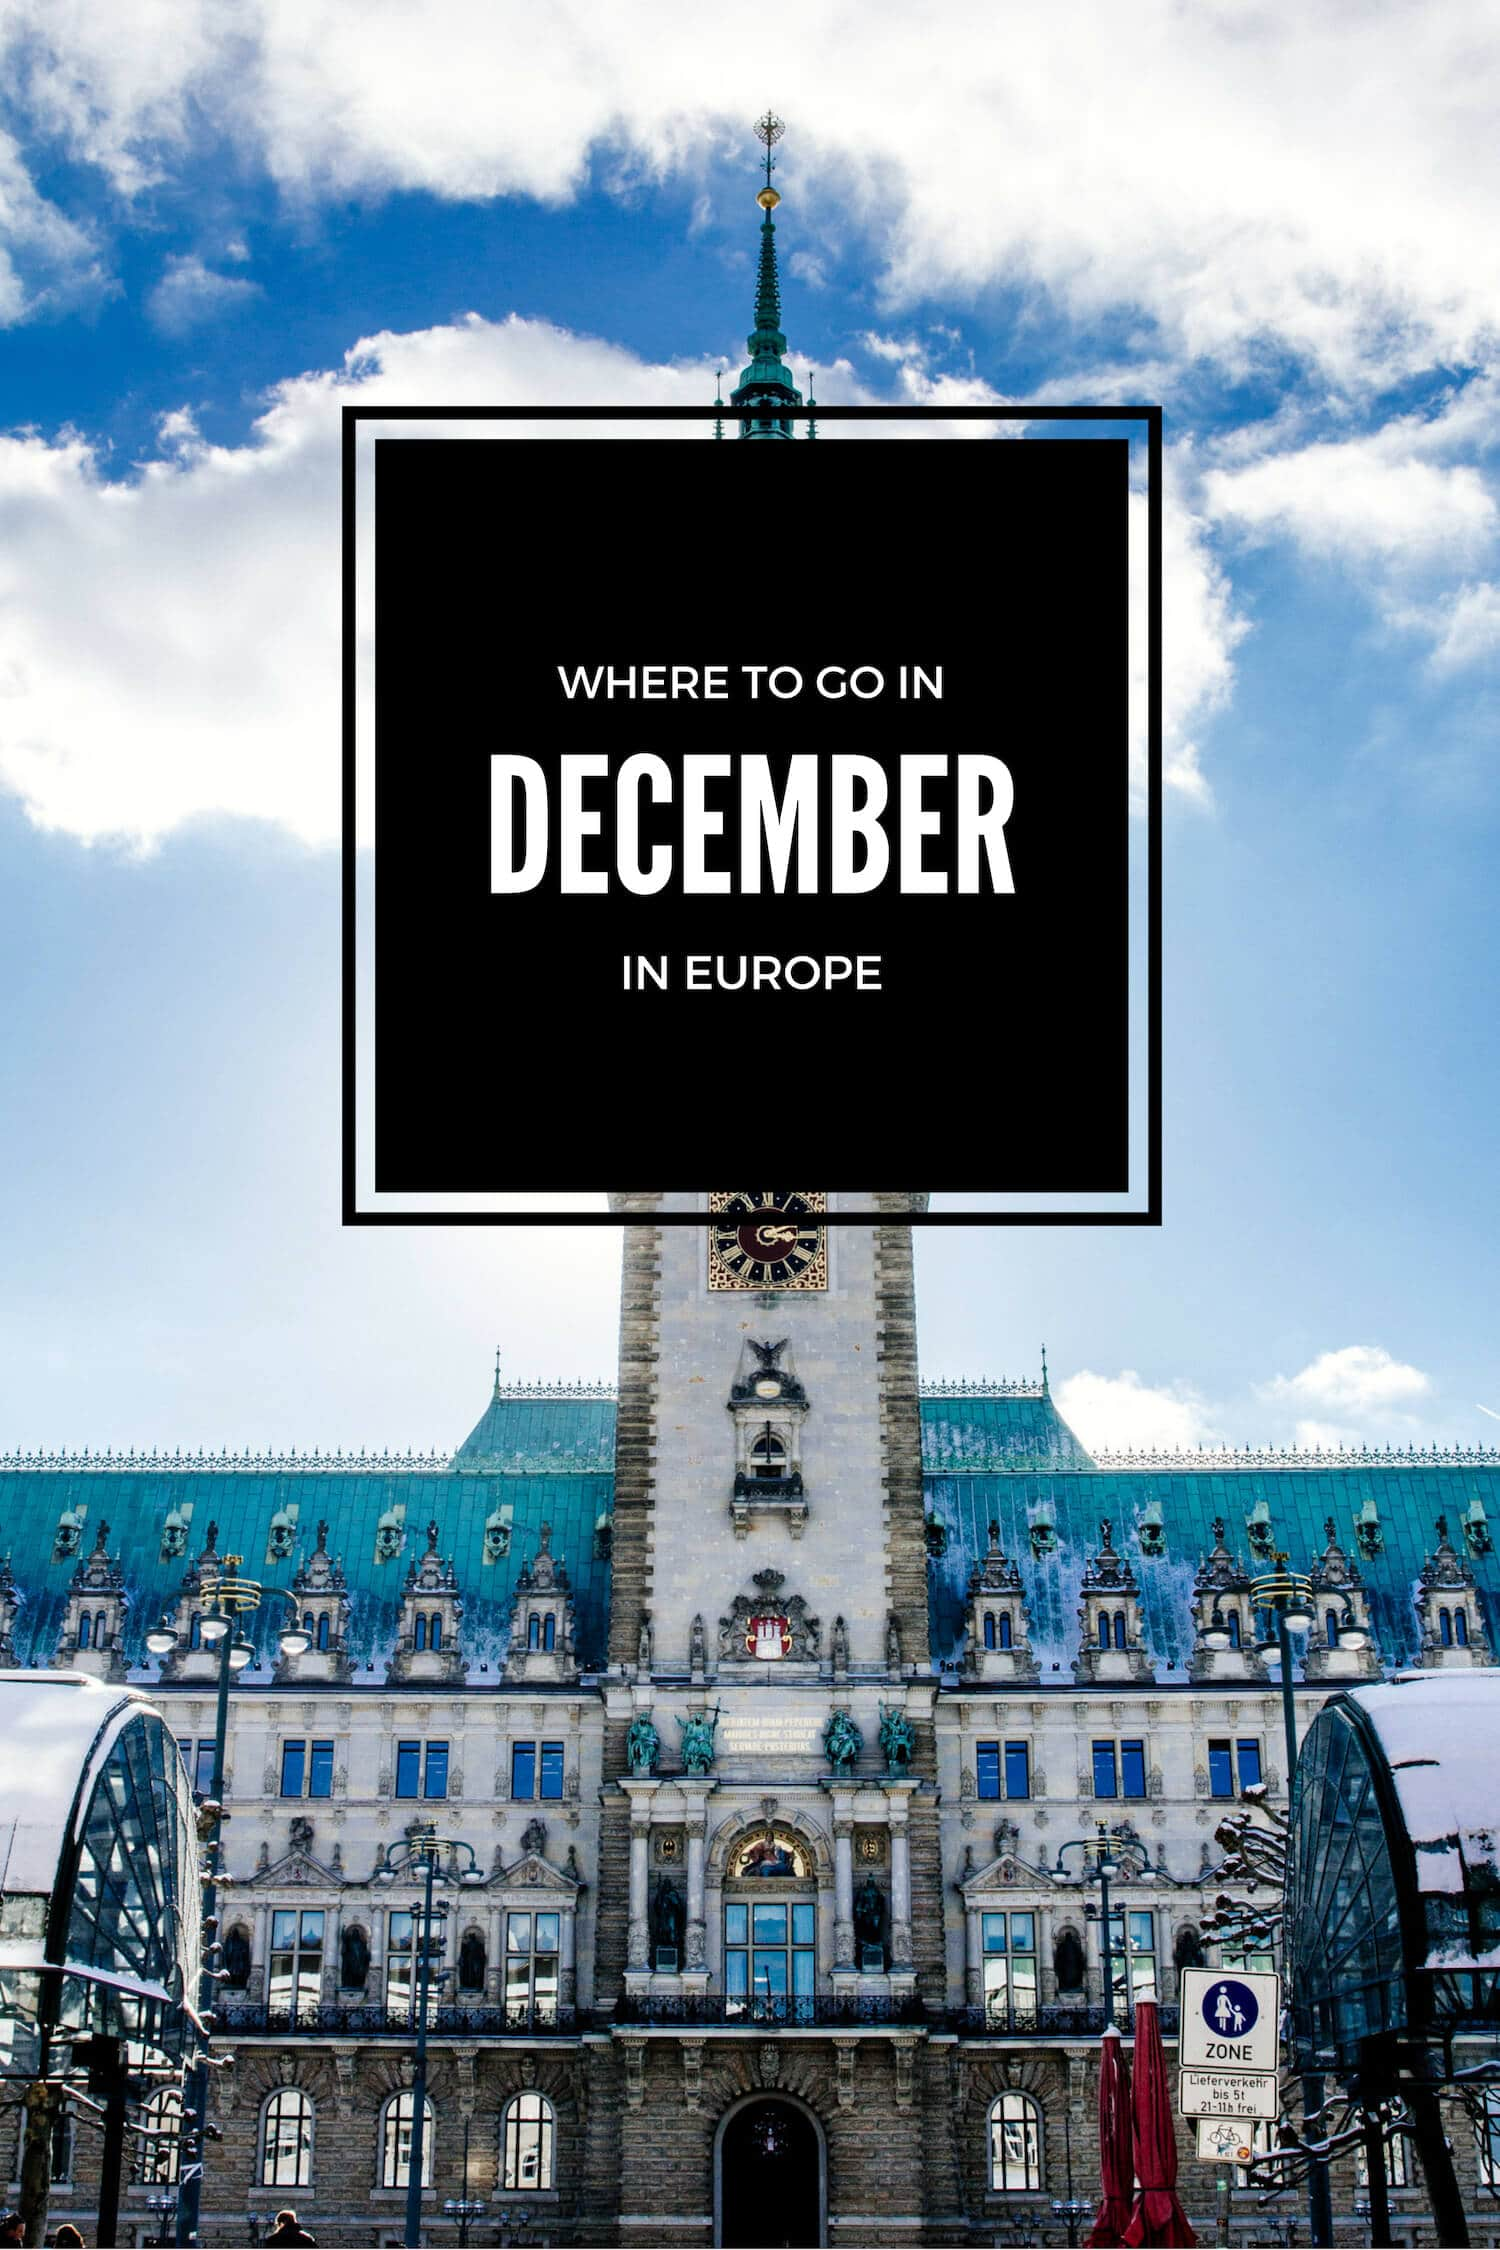 Where to Go in Europe in December